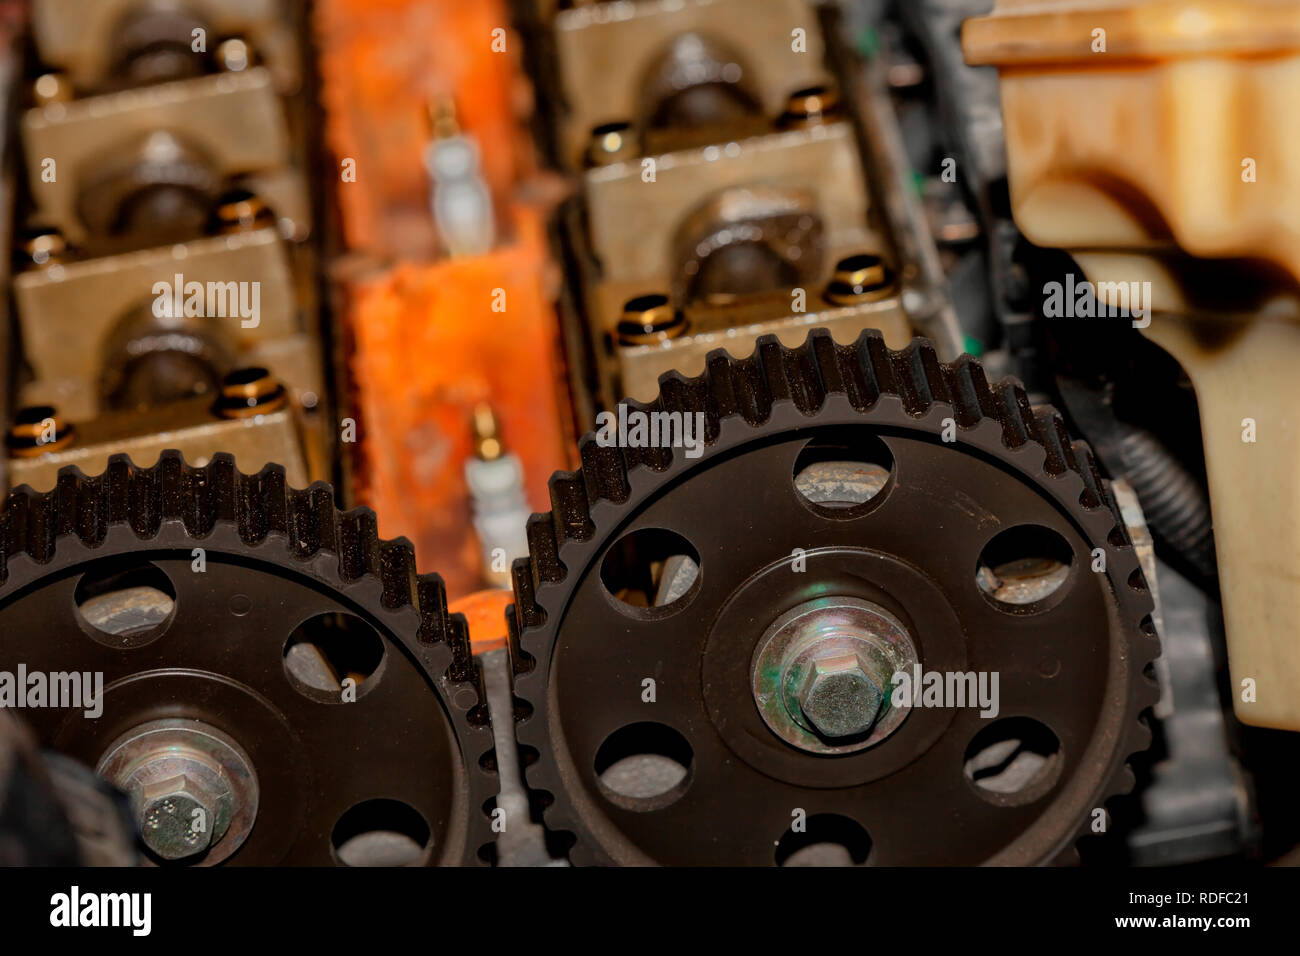 Detail of the disassembled engine of a car for repair. - Stock Image